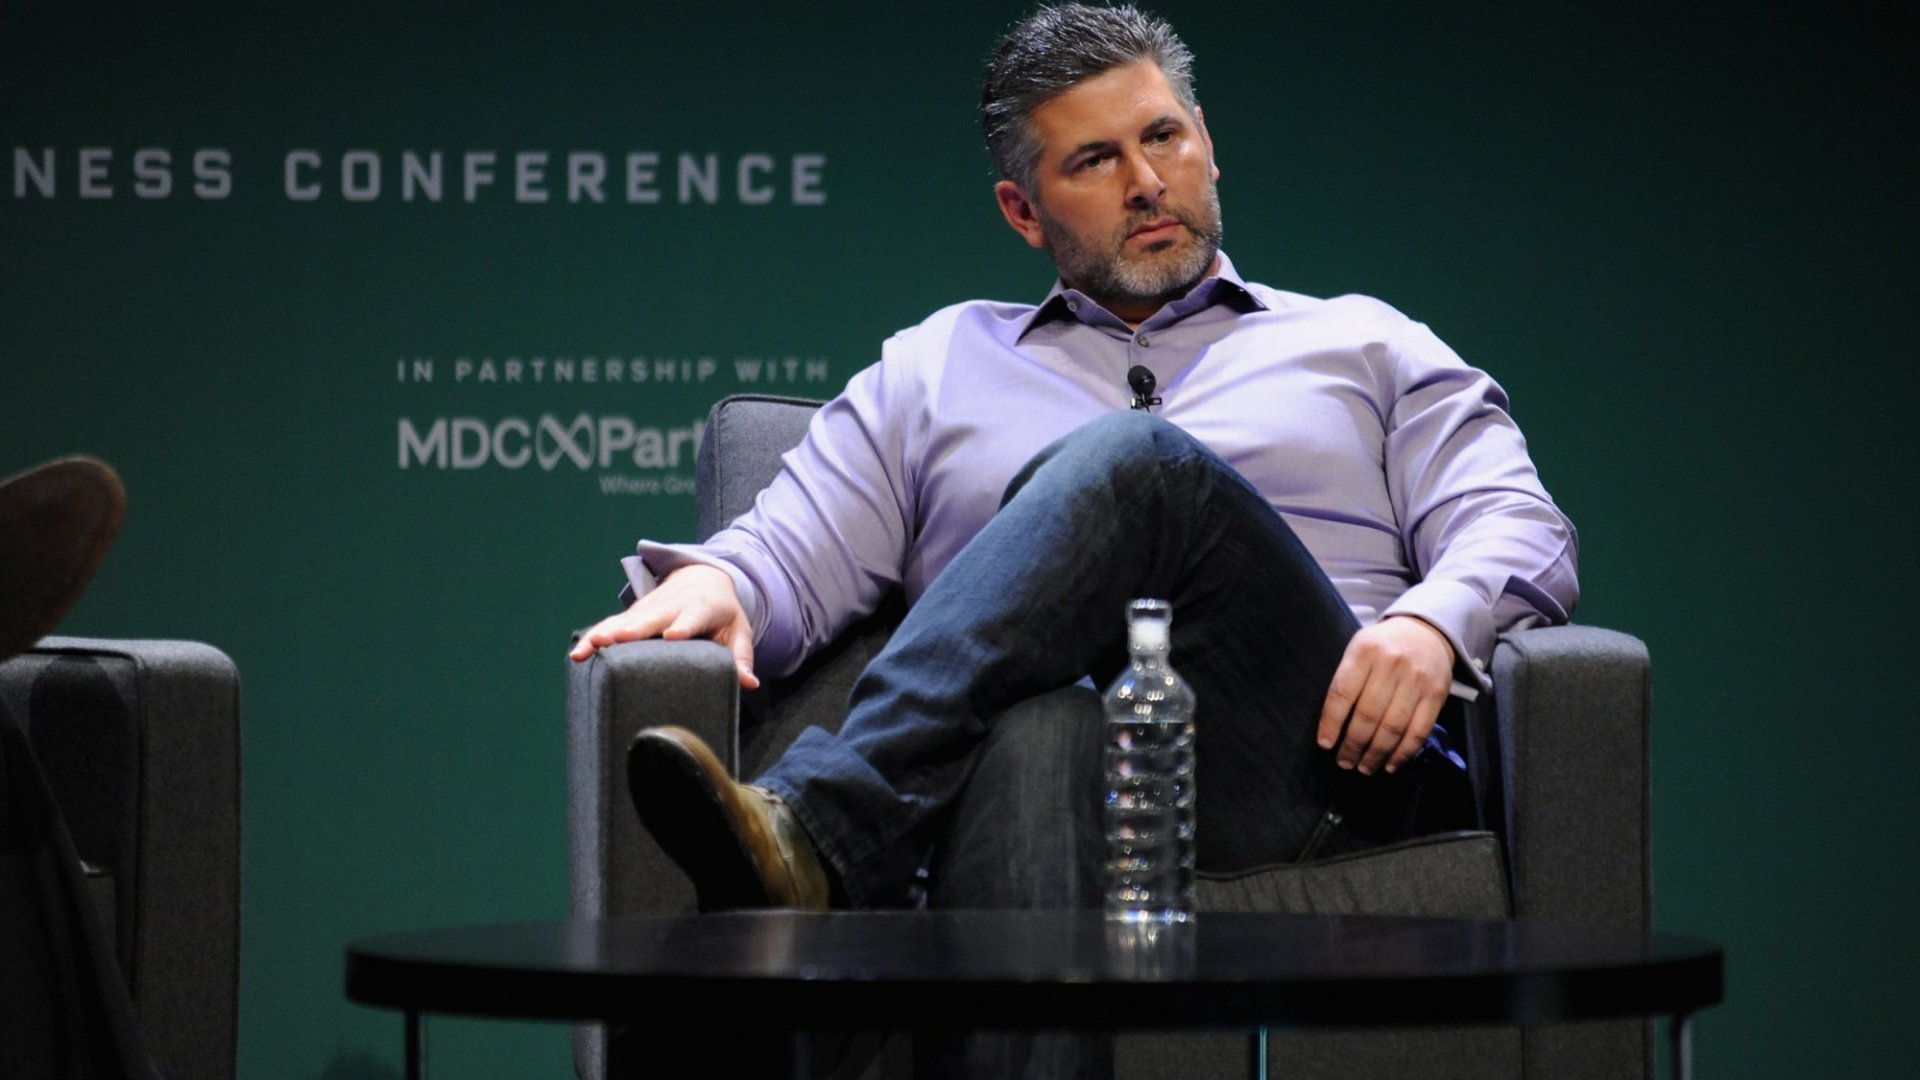 Wealthfront CEO Adam Nash Steps Down, Replaced by Founder